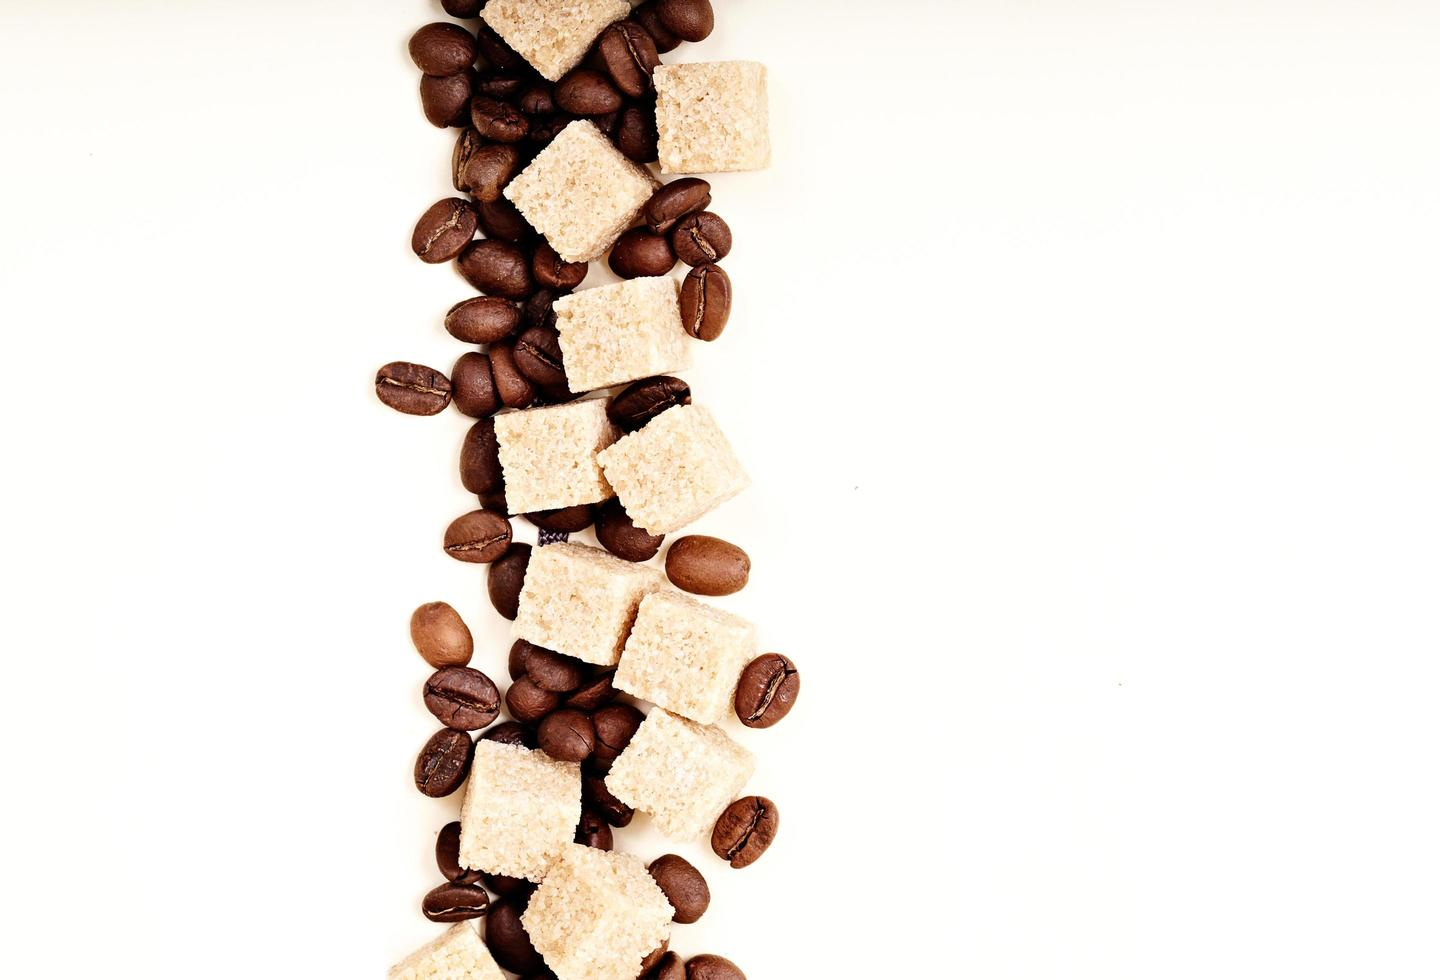 Sugar and coffee beans on white photo